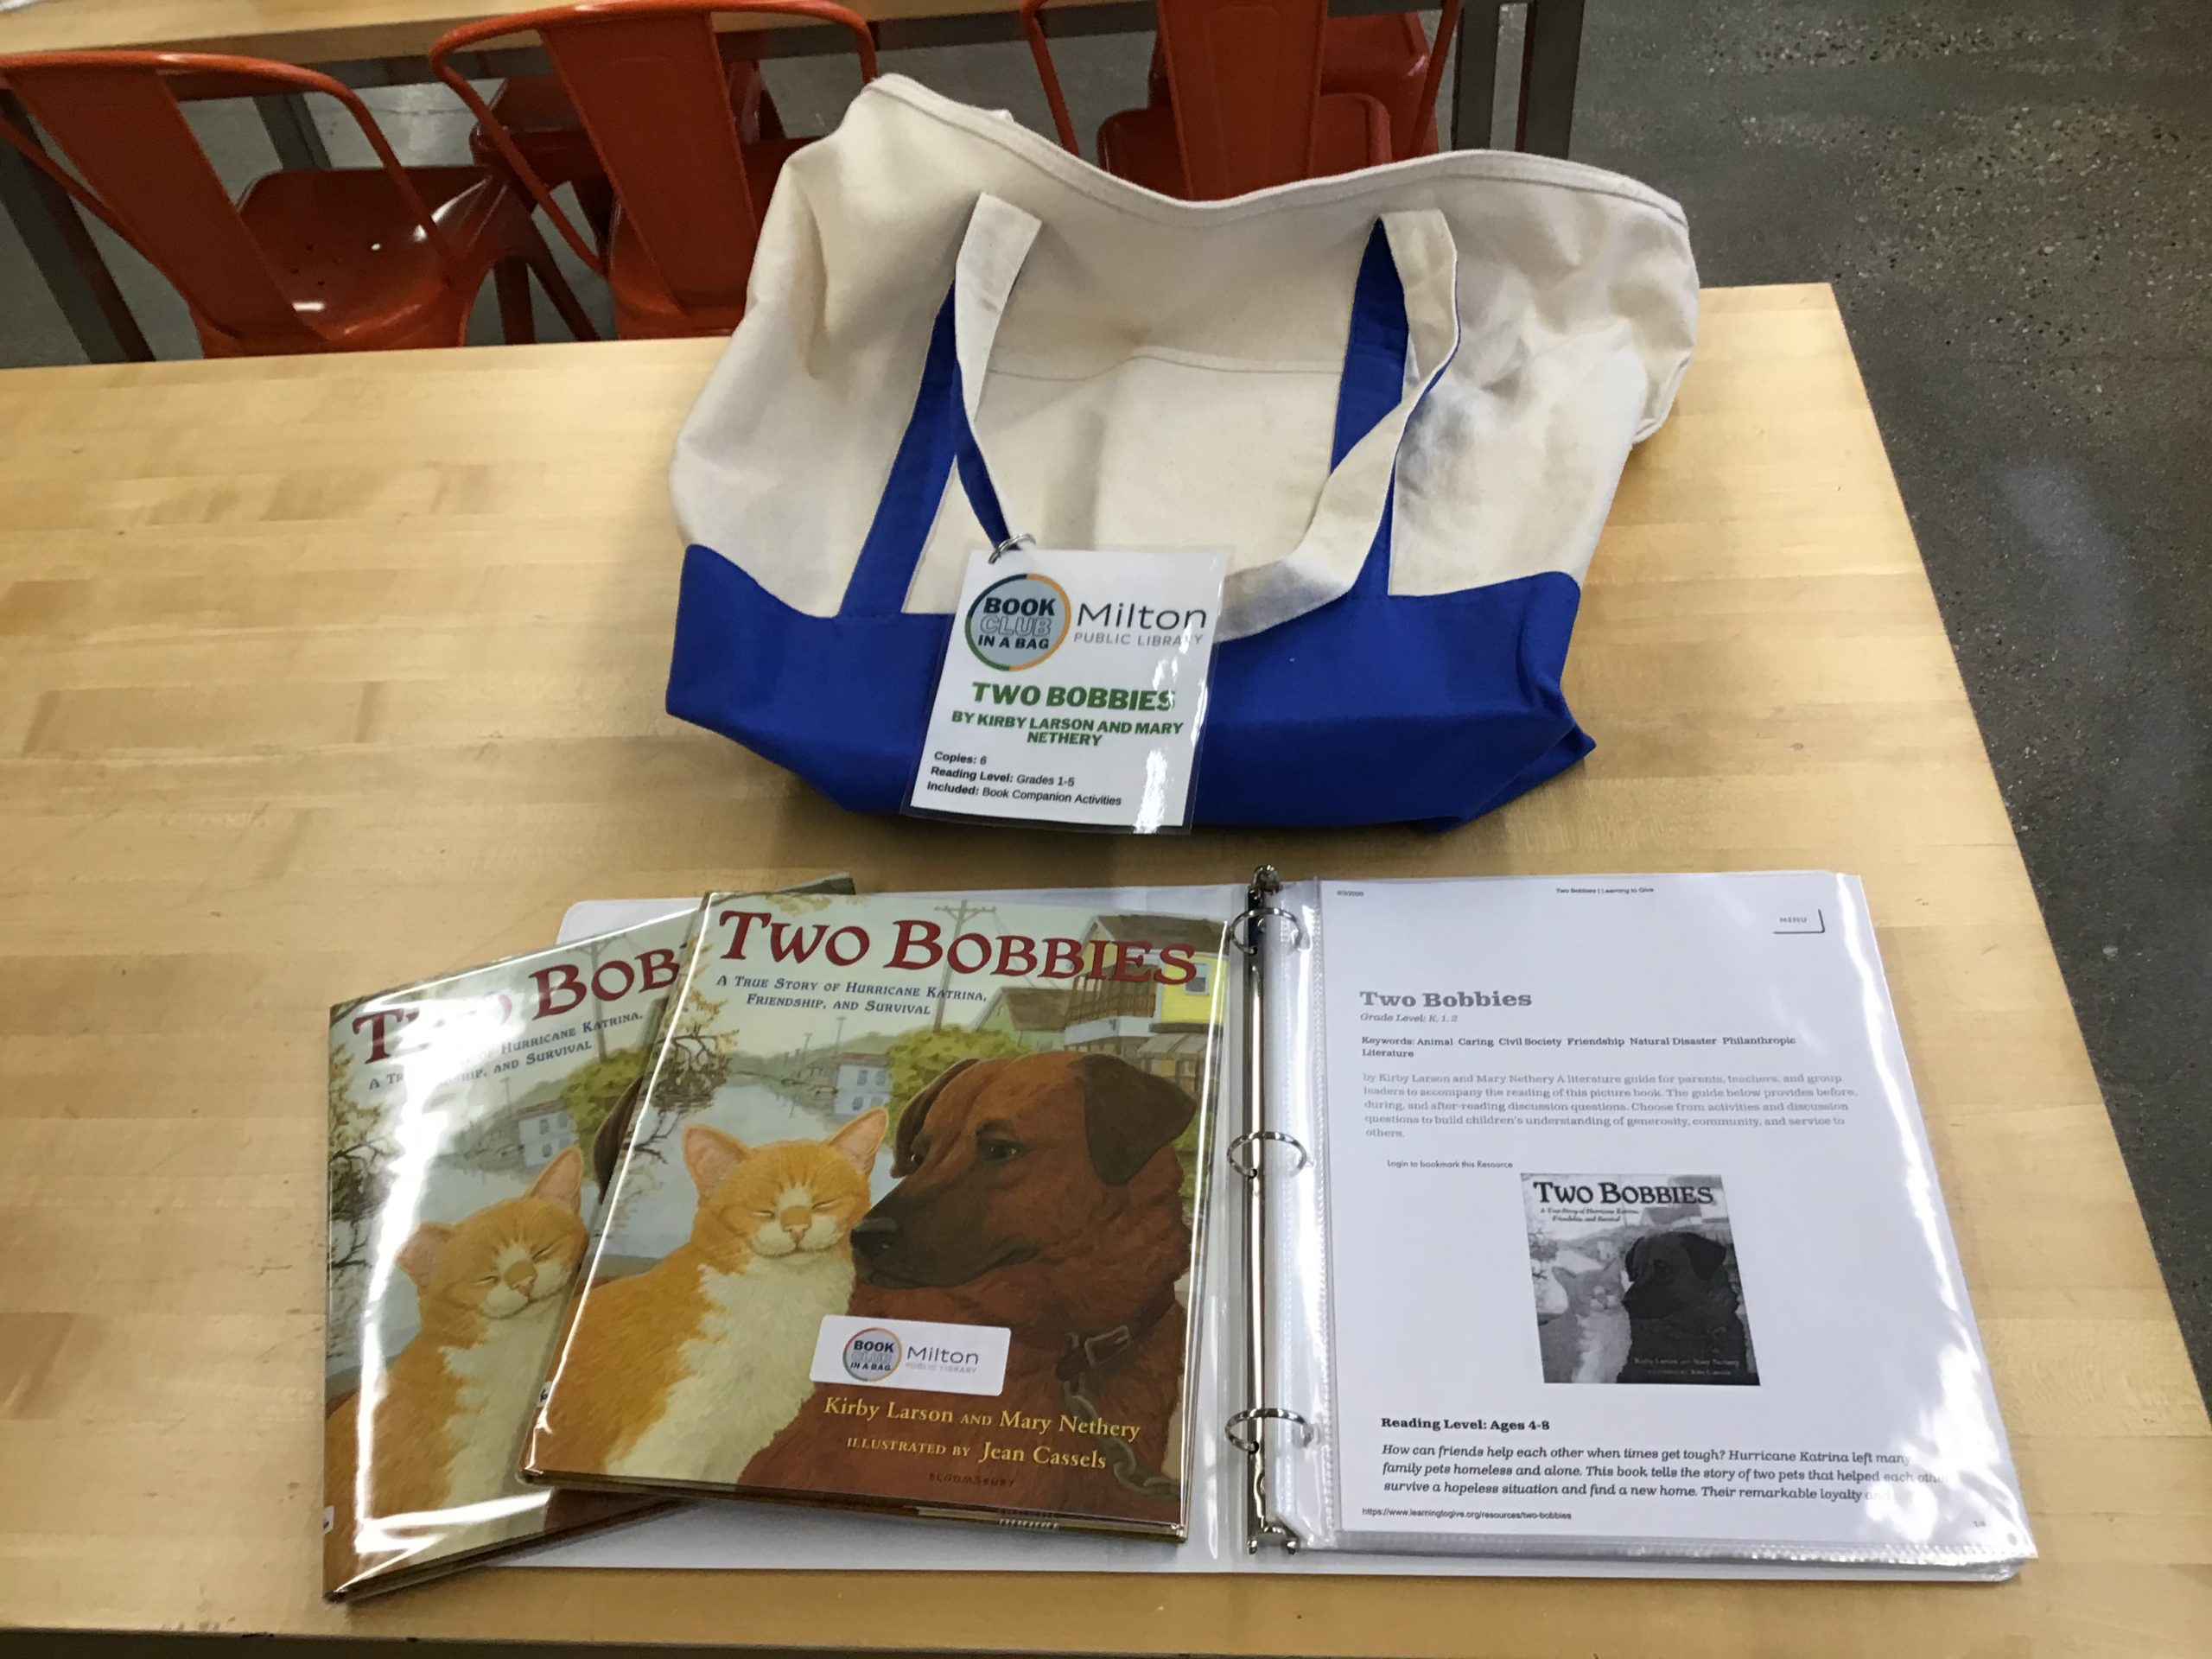 Canvas tote bag with two copies of Two Bobbies displayed over the book club companion binder.